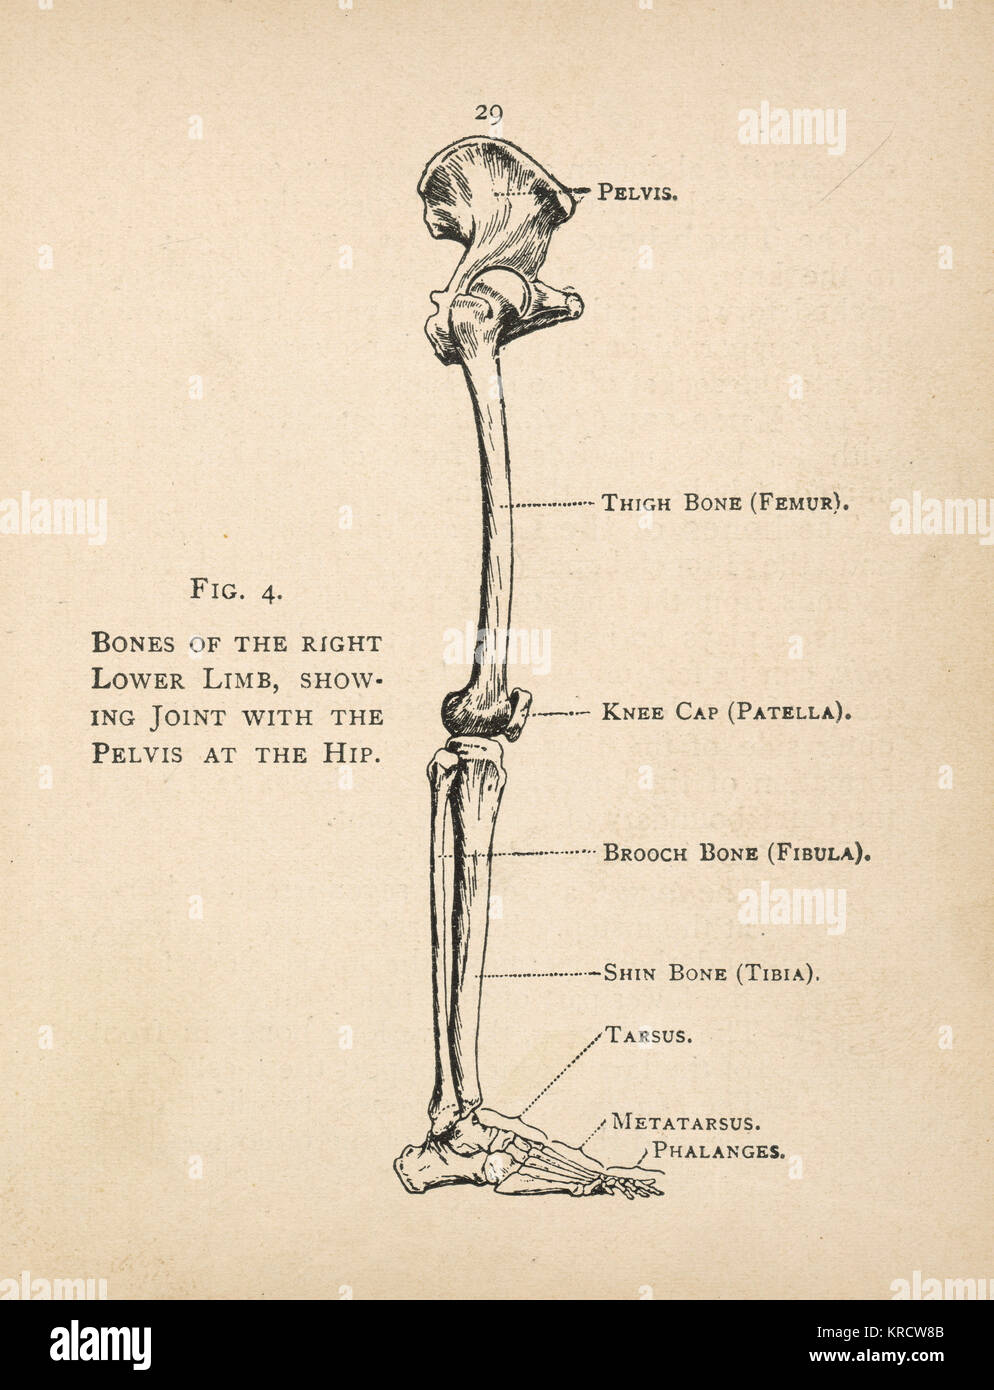 hight resolution of diagram of the bones of the right leg showing the joint with the pelvis at